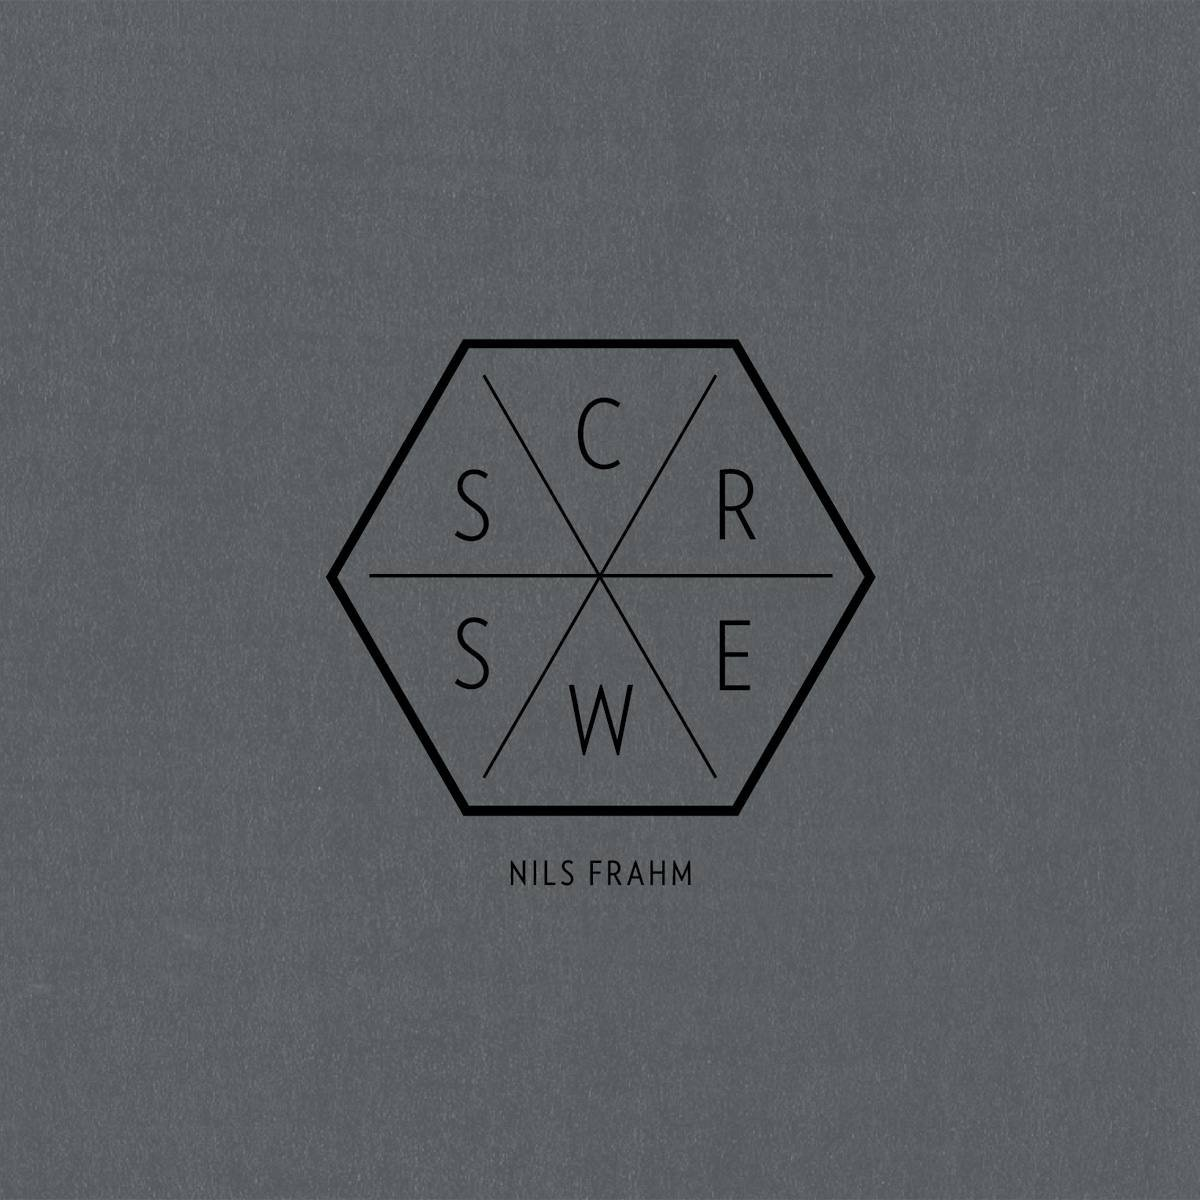 Nils Frahm<br>《Screws》